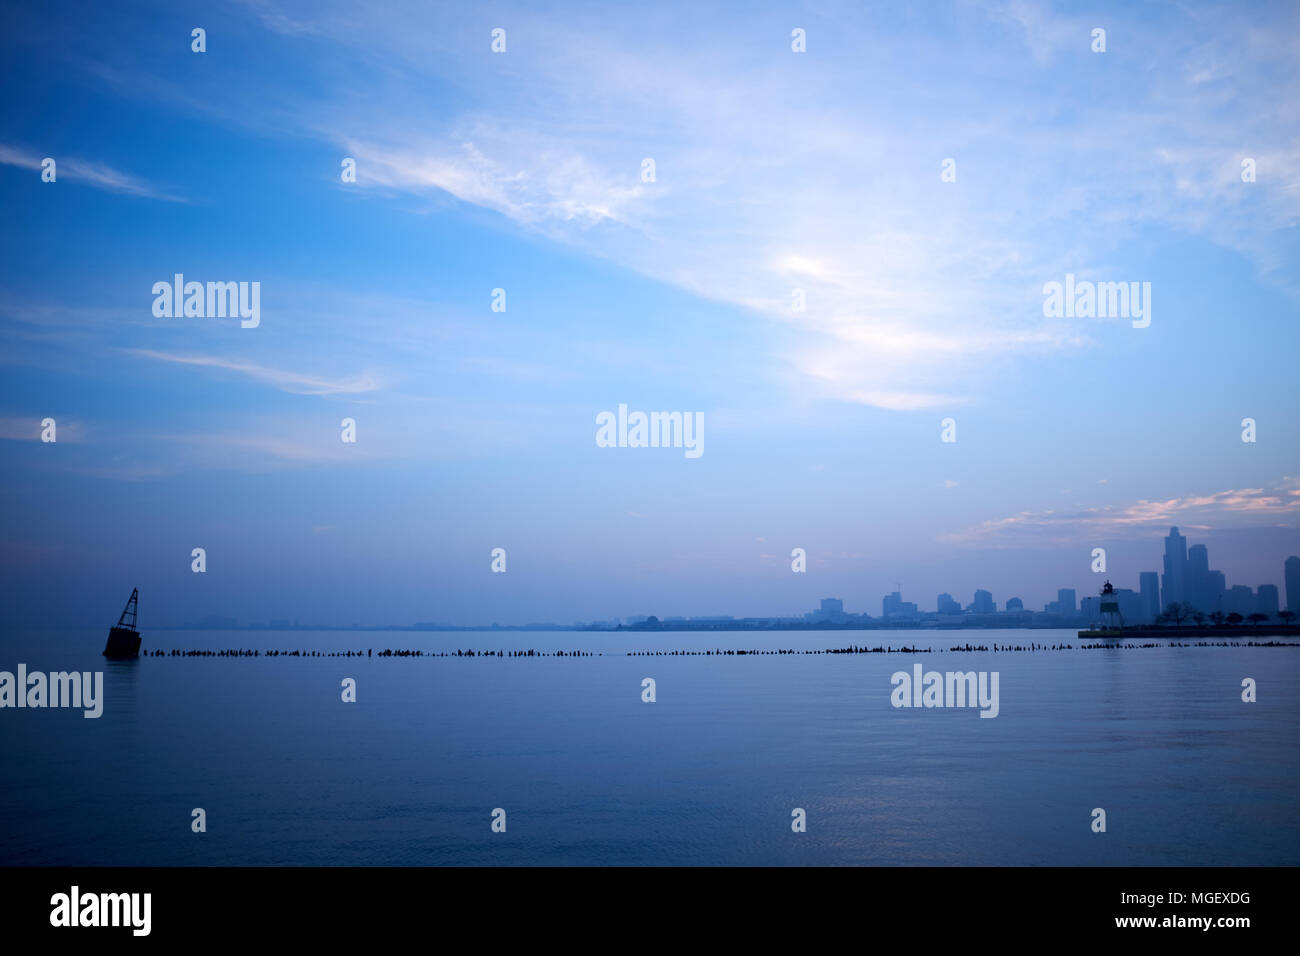 Minimalist blue landscape over Lake Michigan with a breakwater or pier in the foreground and silhouetted Chicago cityscape on the horizon at dusk Stock Photo